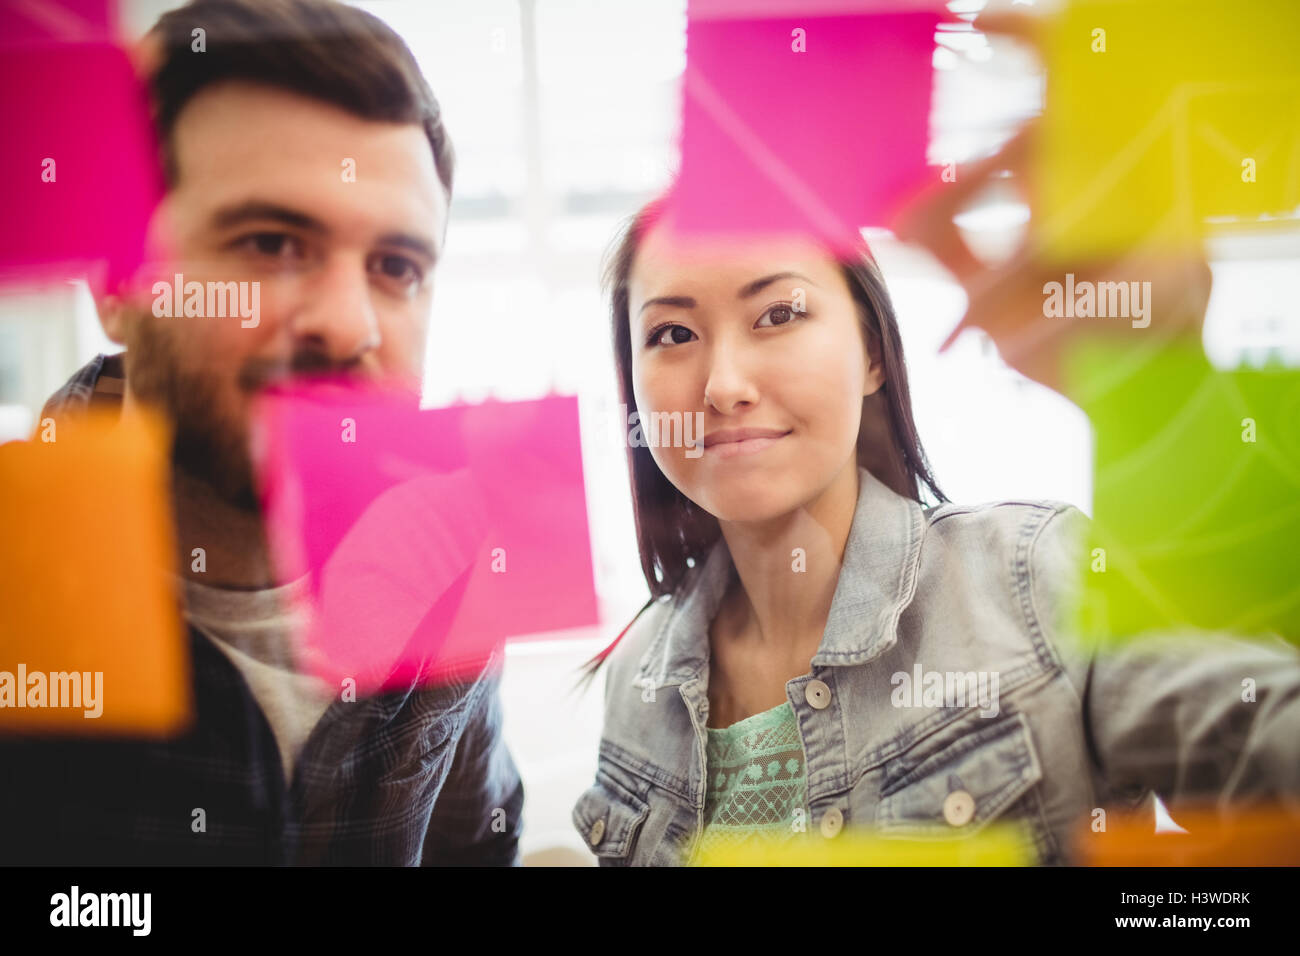 Business people looking at multi colored sticky notes on glass - Stock Image